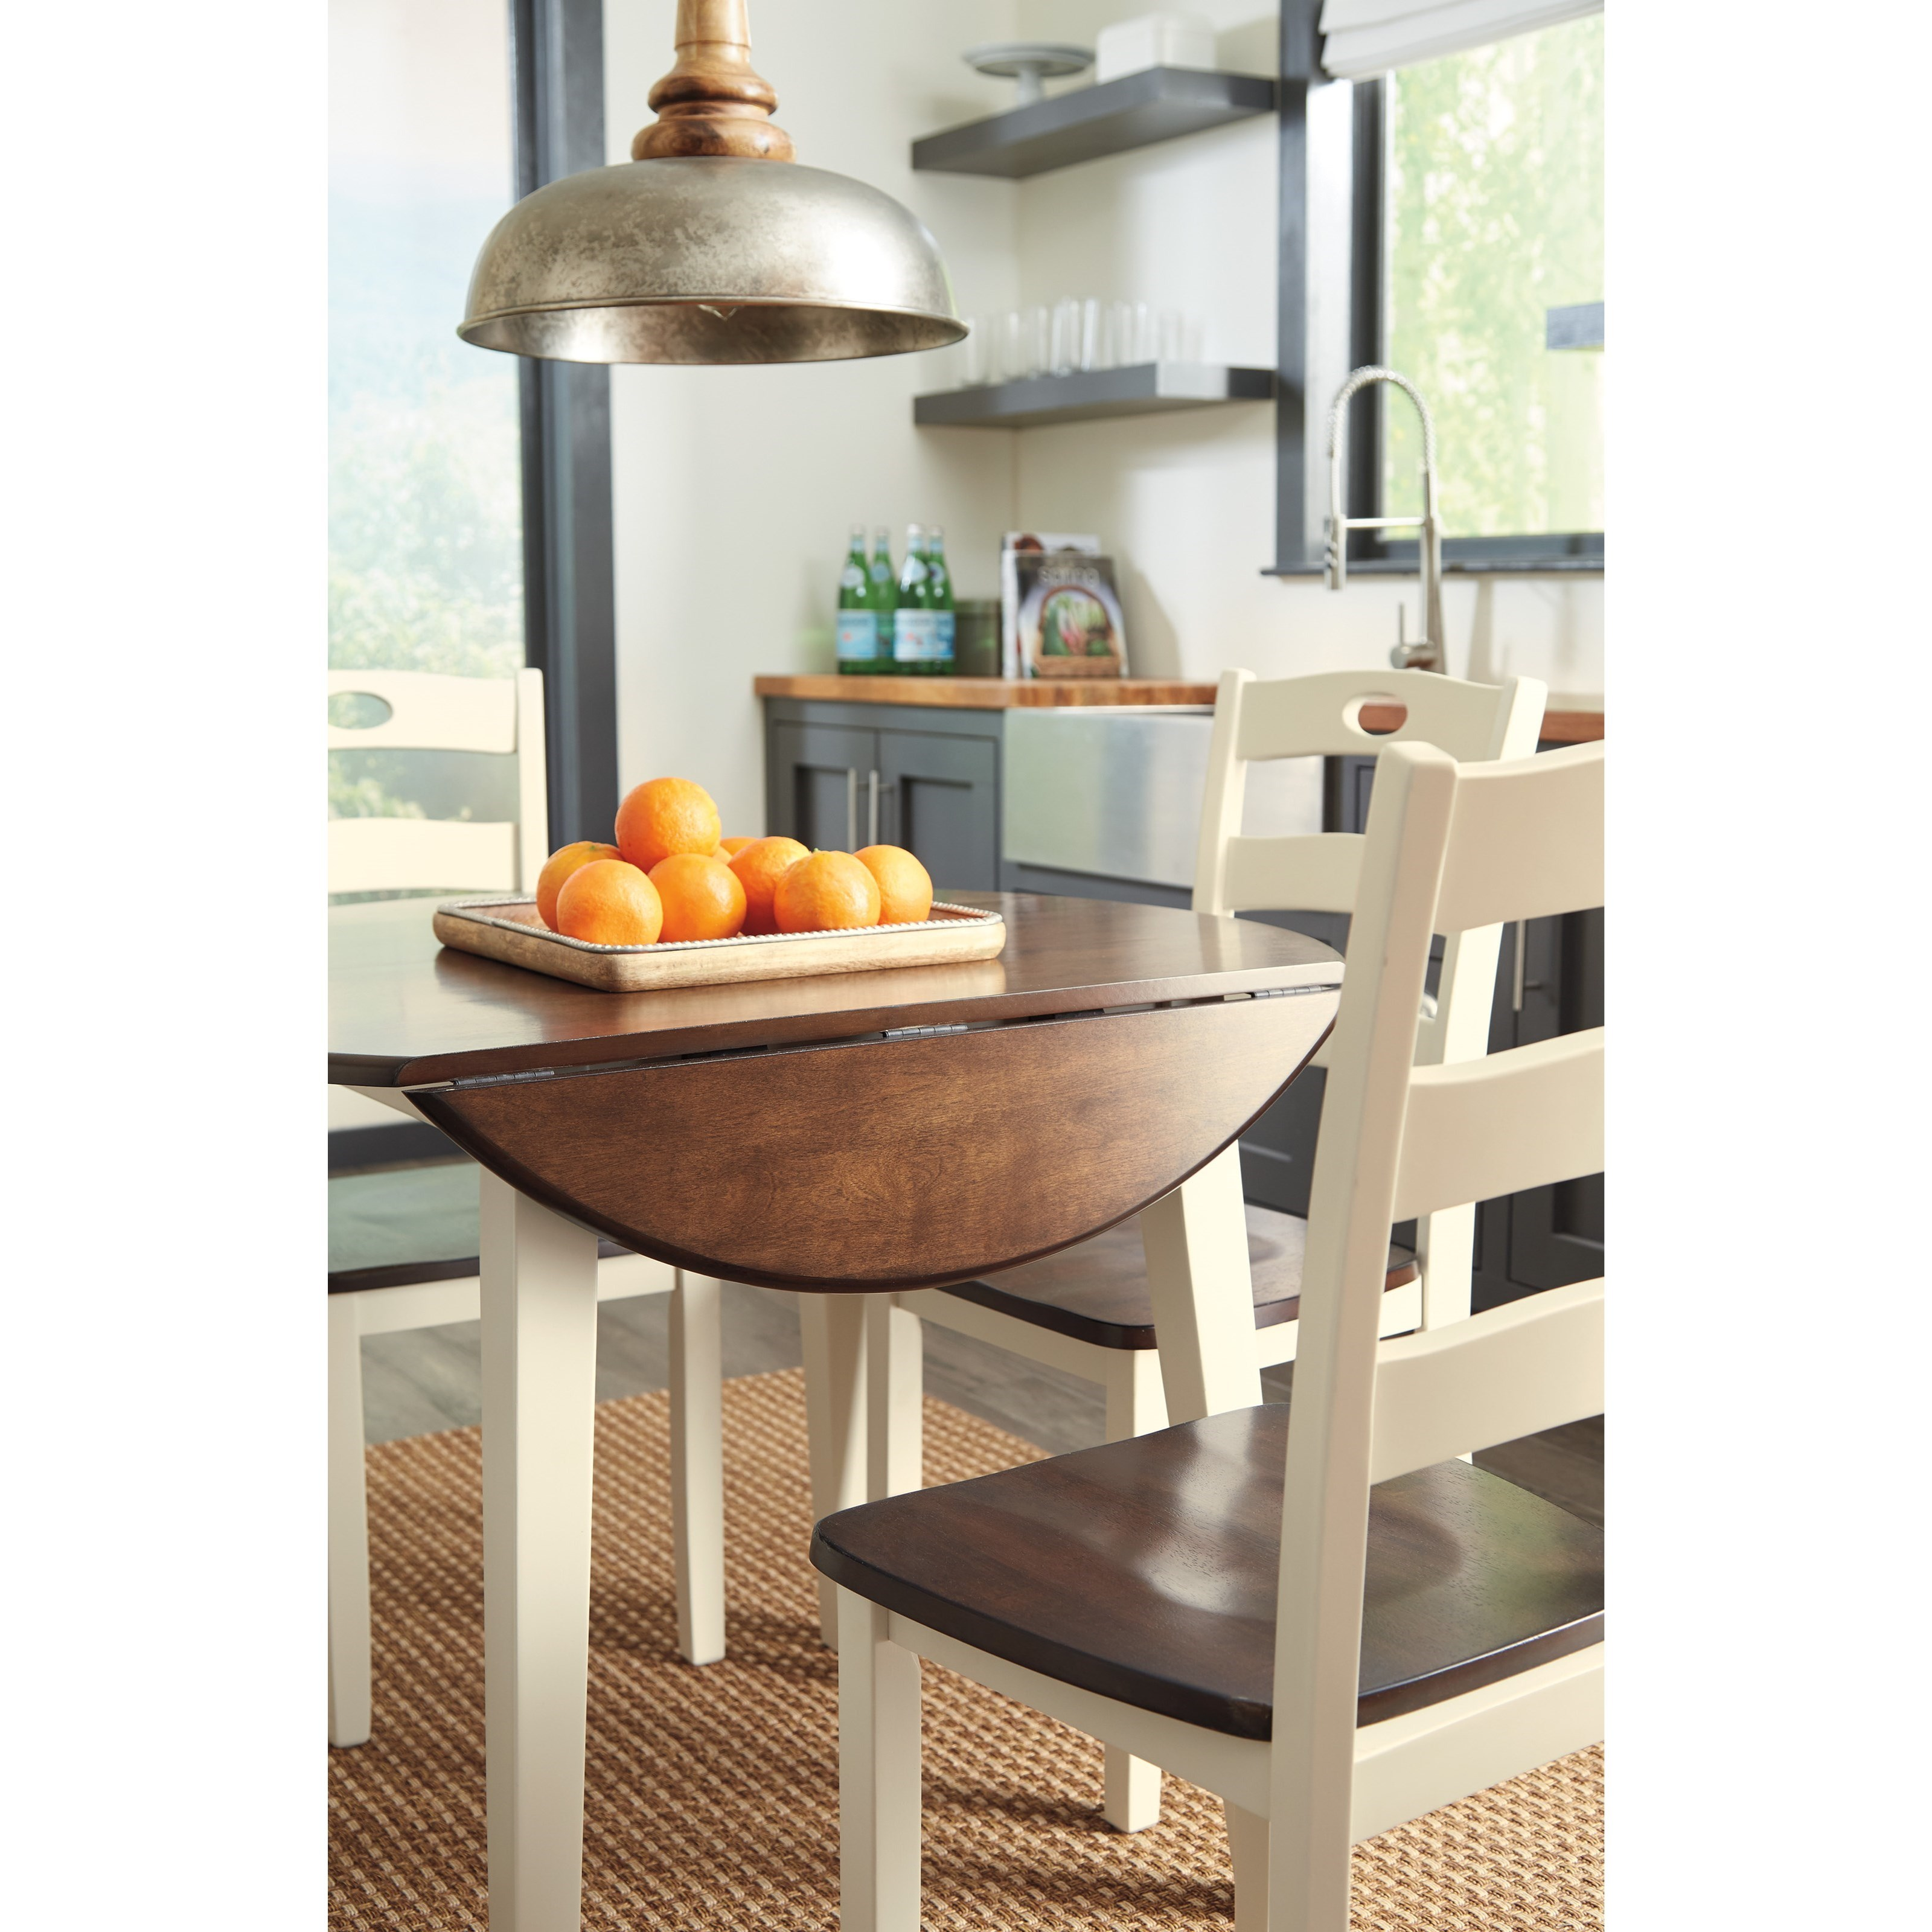 15 Small Dining Room Table Ideas Tips: Ashley Signature Design Woodanville D335-15 Two-Tone